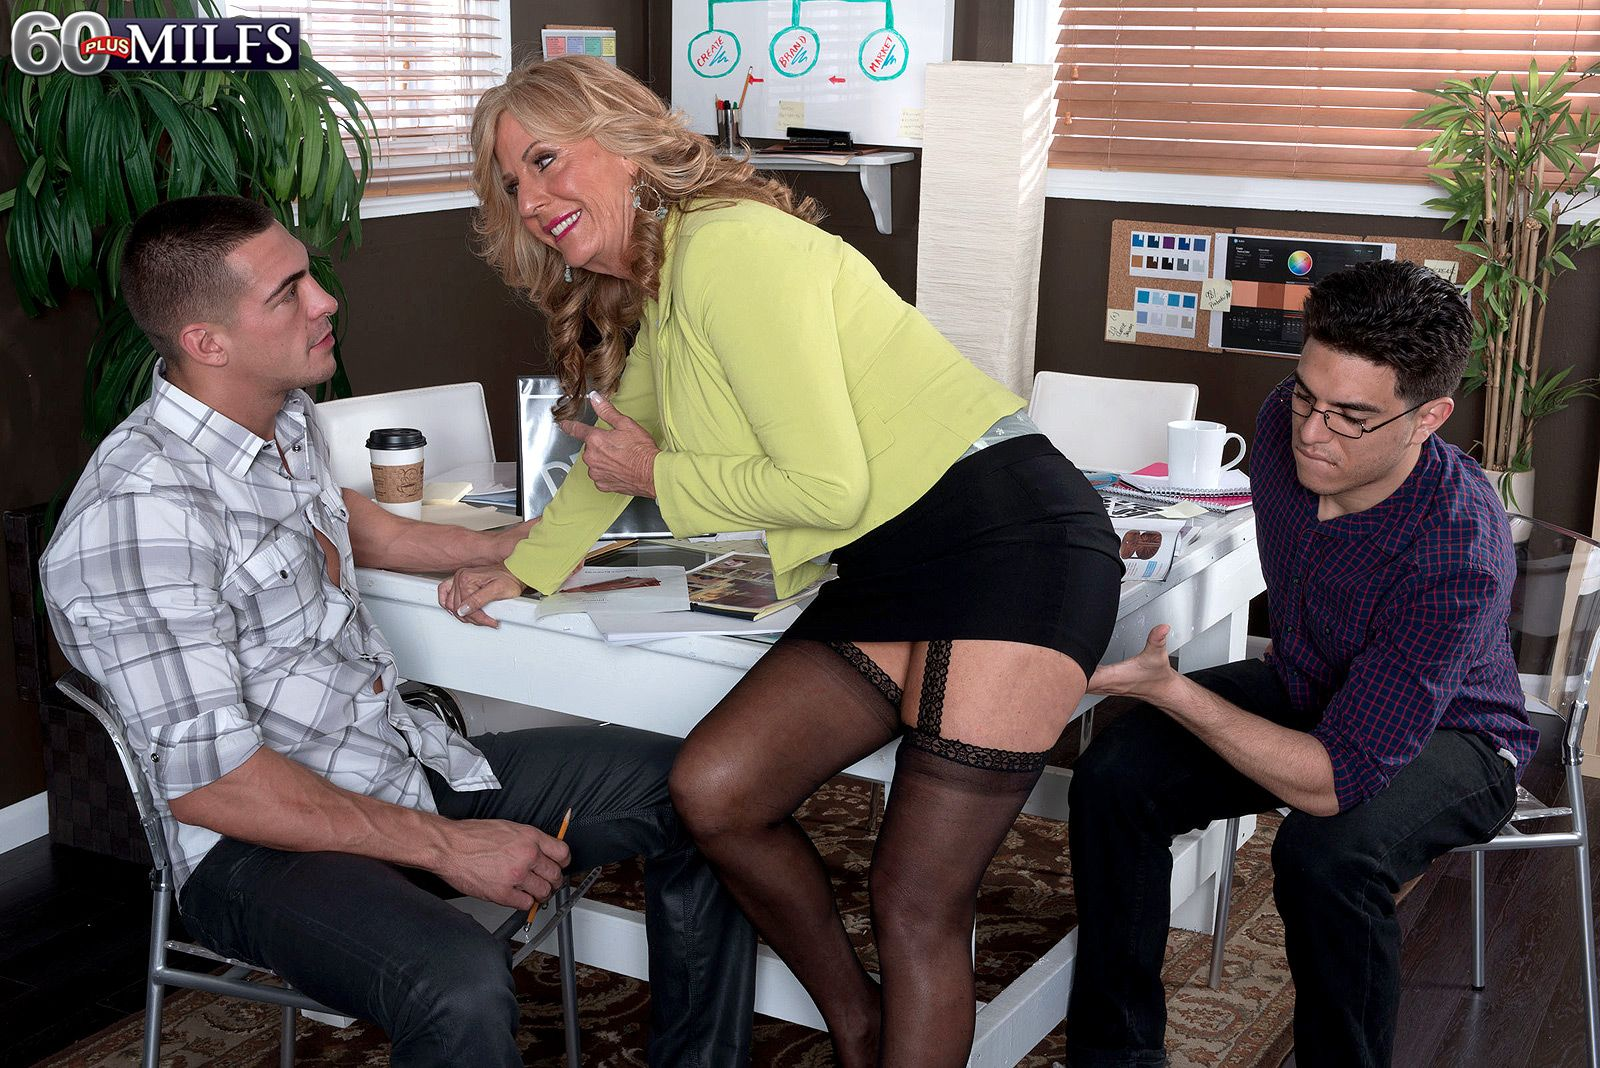 Gorgeous blonde MILF over 60 Phoenix Skye sucking and fucking 2 younger men